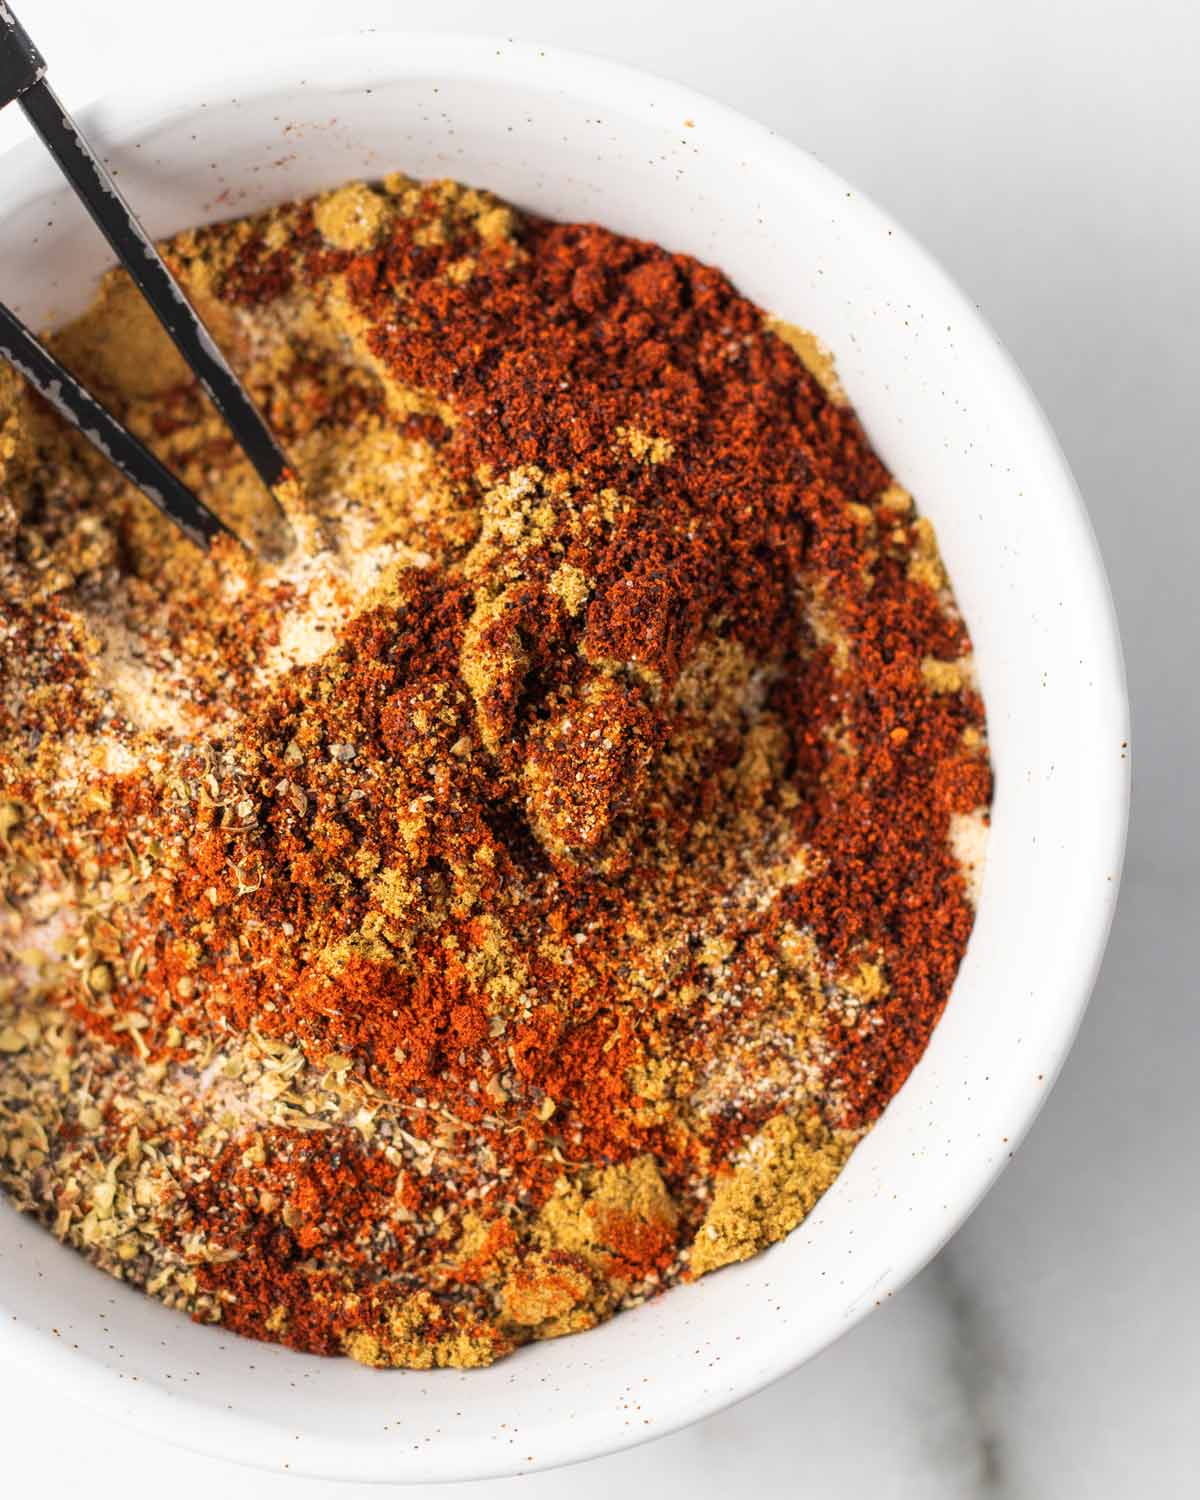 Spices mixed together in a bowl to make homemade taco seasoning.